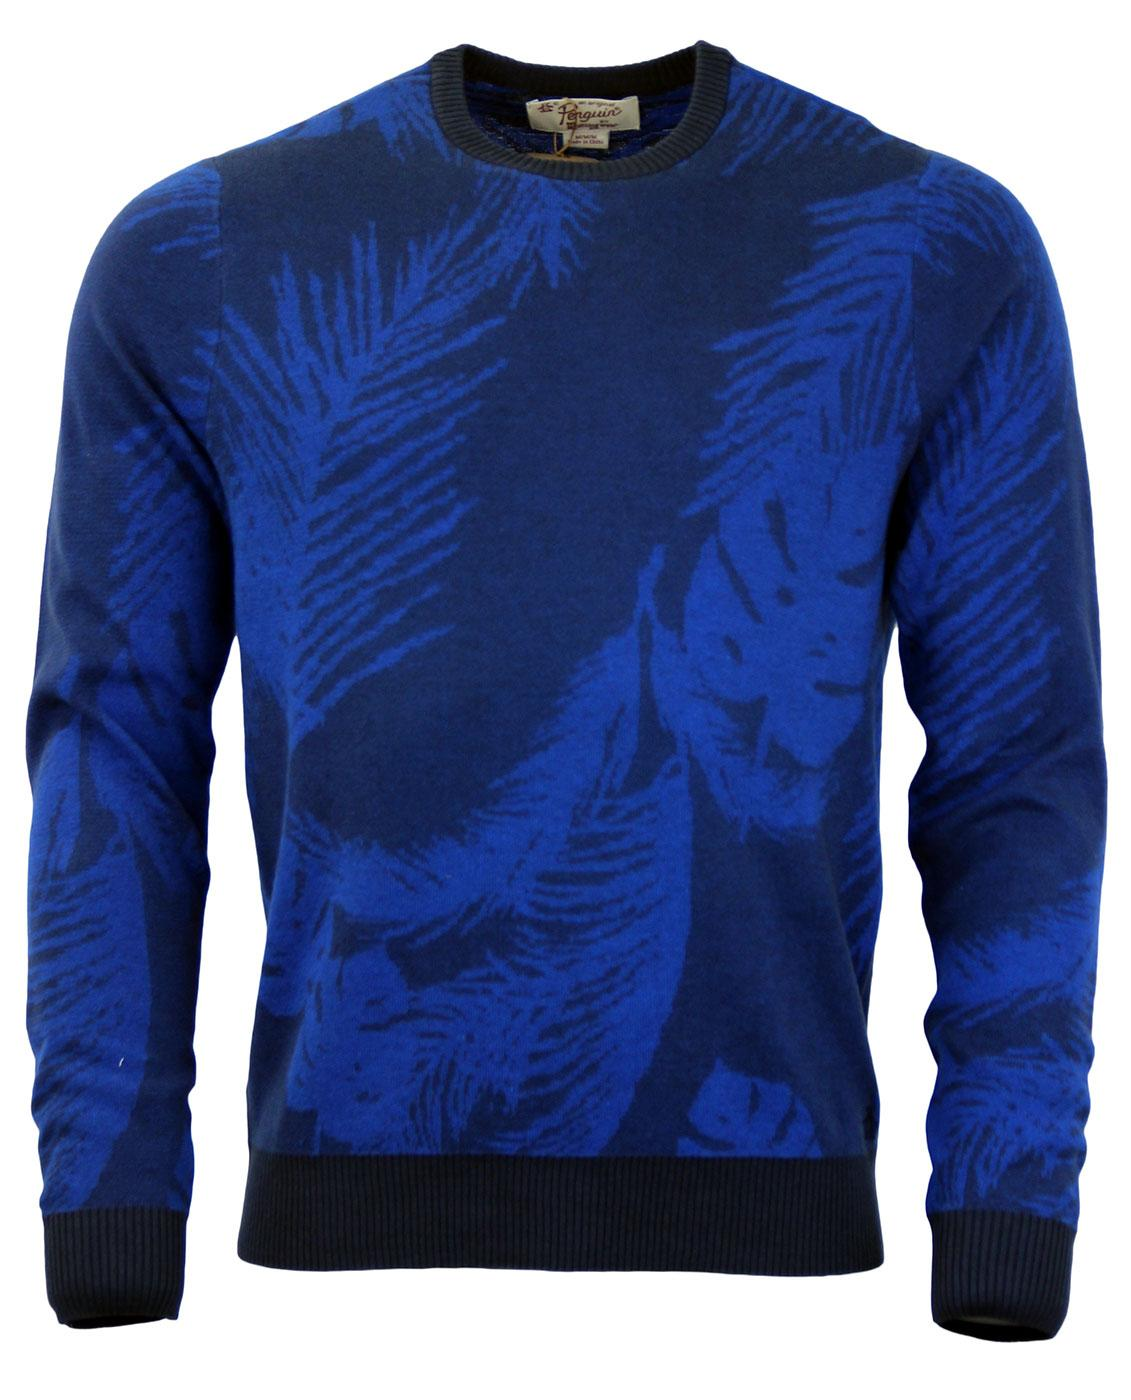 Mavina Palm ORIGINAL PENGUIN Retro Crew Jumper